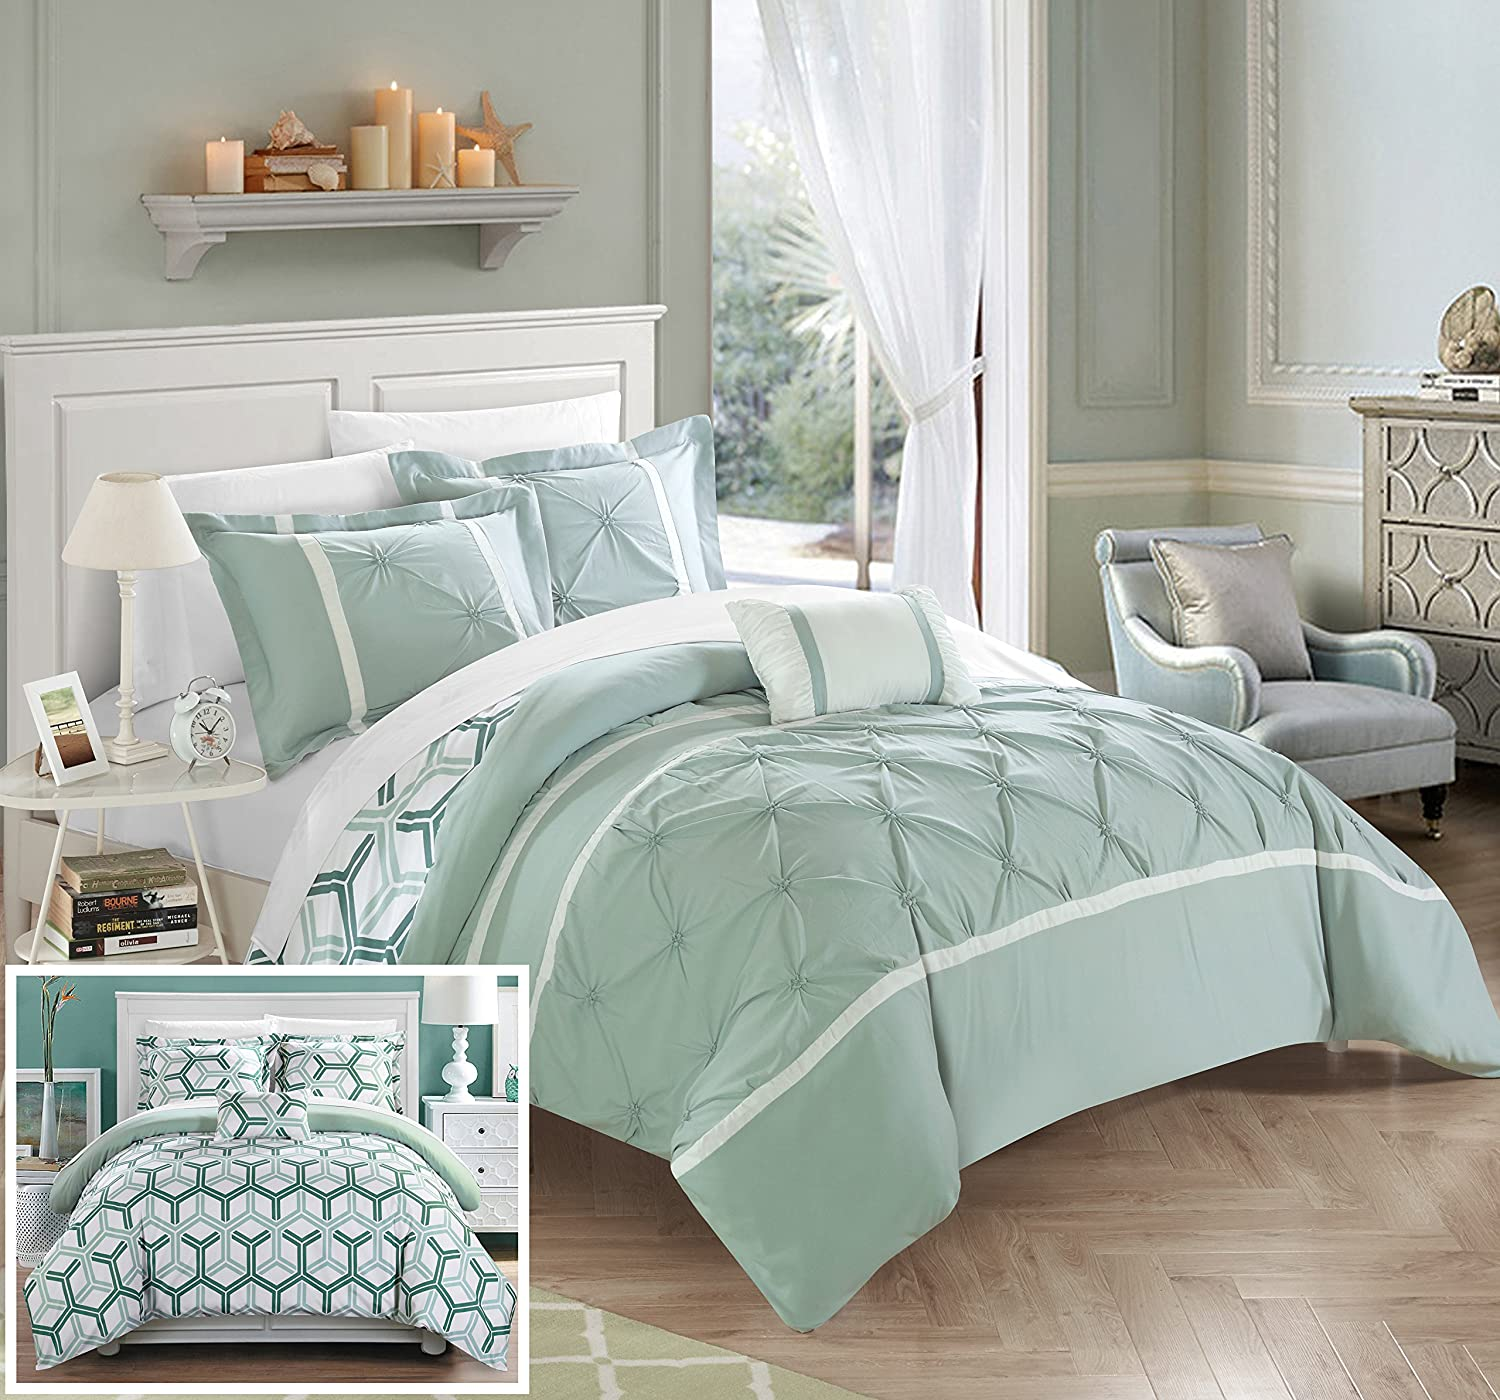 Chic Home CS2749-AN Marcia 4Piece Marcia Pinch Pleated Ruffled & Reversible Geometric Design Printed Full/Queen Comforter Set Blue,Full/Queen